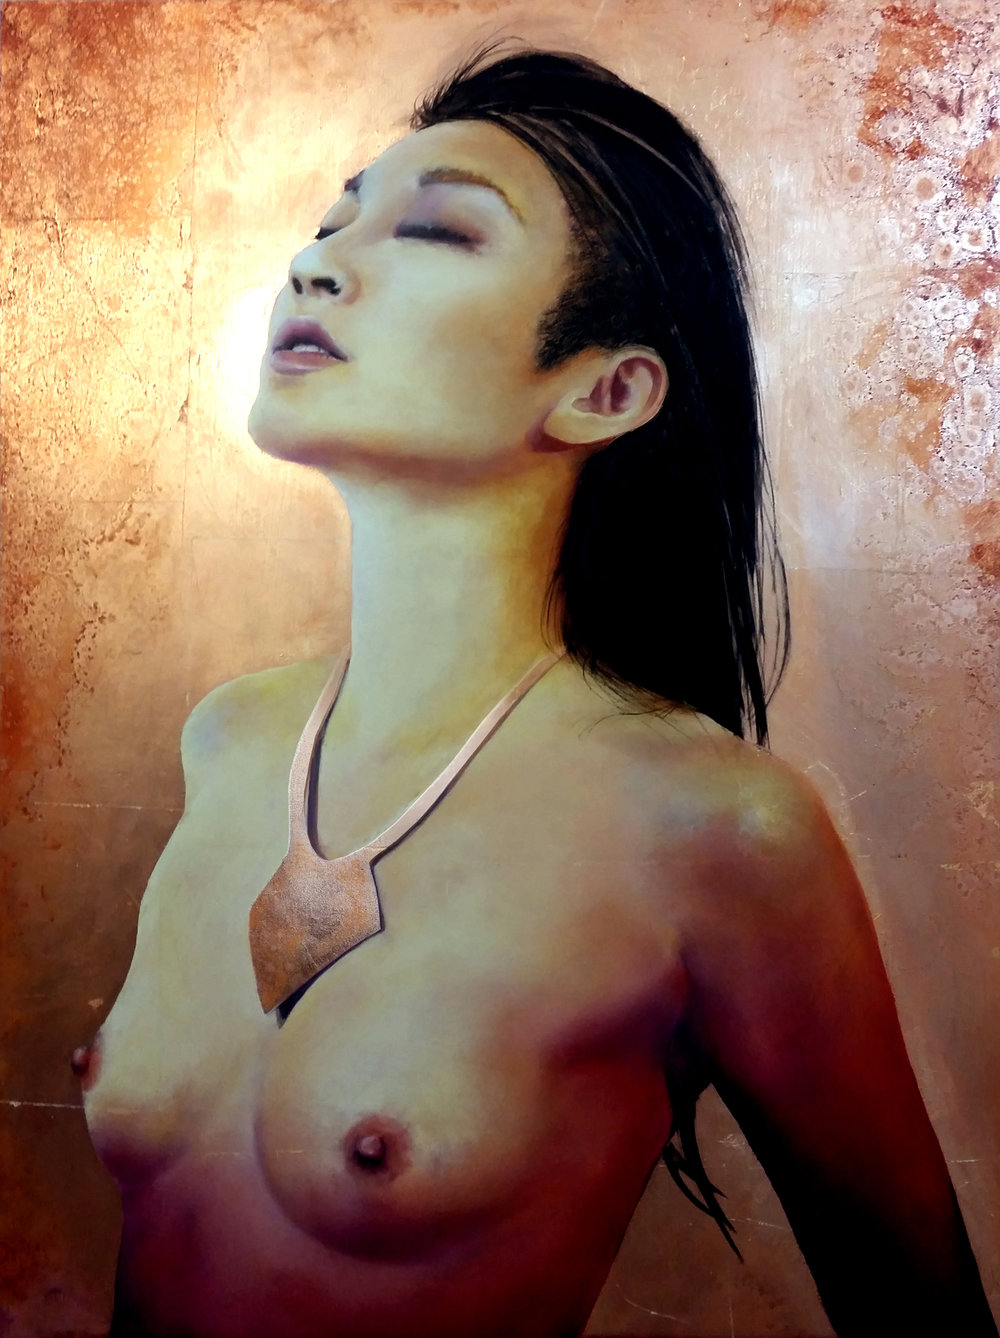 """Strength in Surrender"", 2016, Ginger Del Rey  oil and copper leaf on gesso board 24"" x 18"" x 1""  Sold  This is a portrait of the immensely creative and dynamic force that is performance artist, Poppy Liu. We had a powerful and emotional photoshoot together that culminated in a series of deeply personal portraits of a woman learning to find her strength through channels she was just beginning to explore.  ""  To be empowered and in my body without being diminished or policed or sexualized. To be free.""  - Poppy Liu"